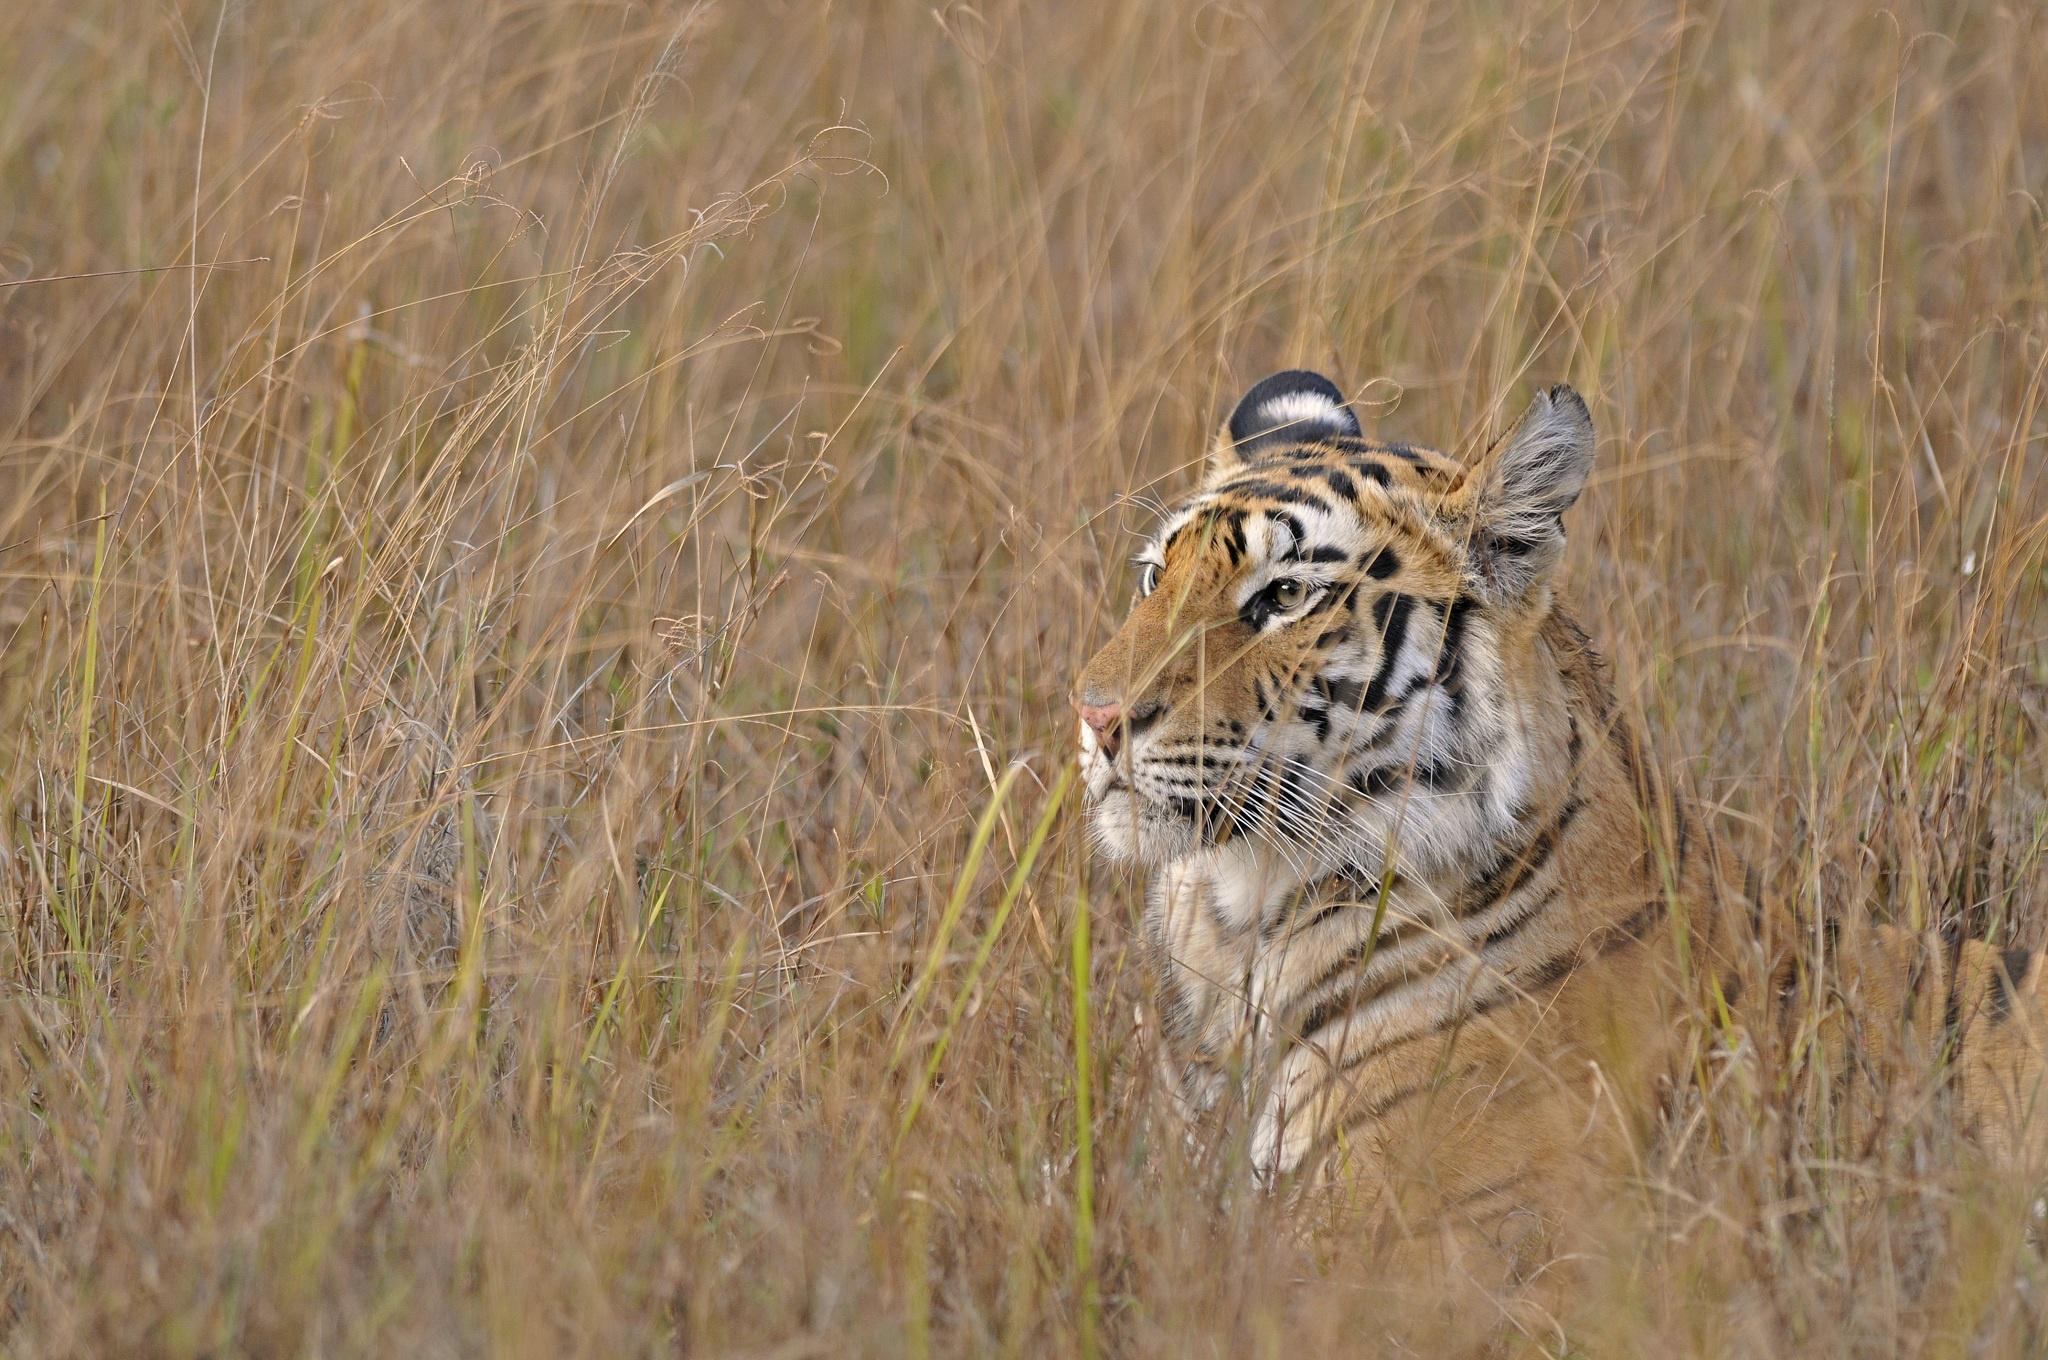 Cute Baby Blue Eyes Wallpaper Hd Tiger Wild Cat Face Profile Grass Camouflage Hd